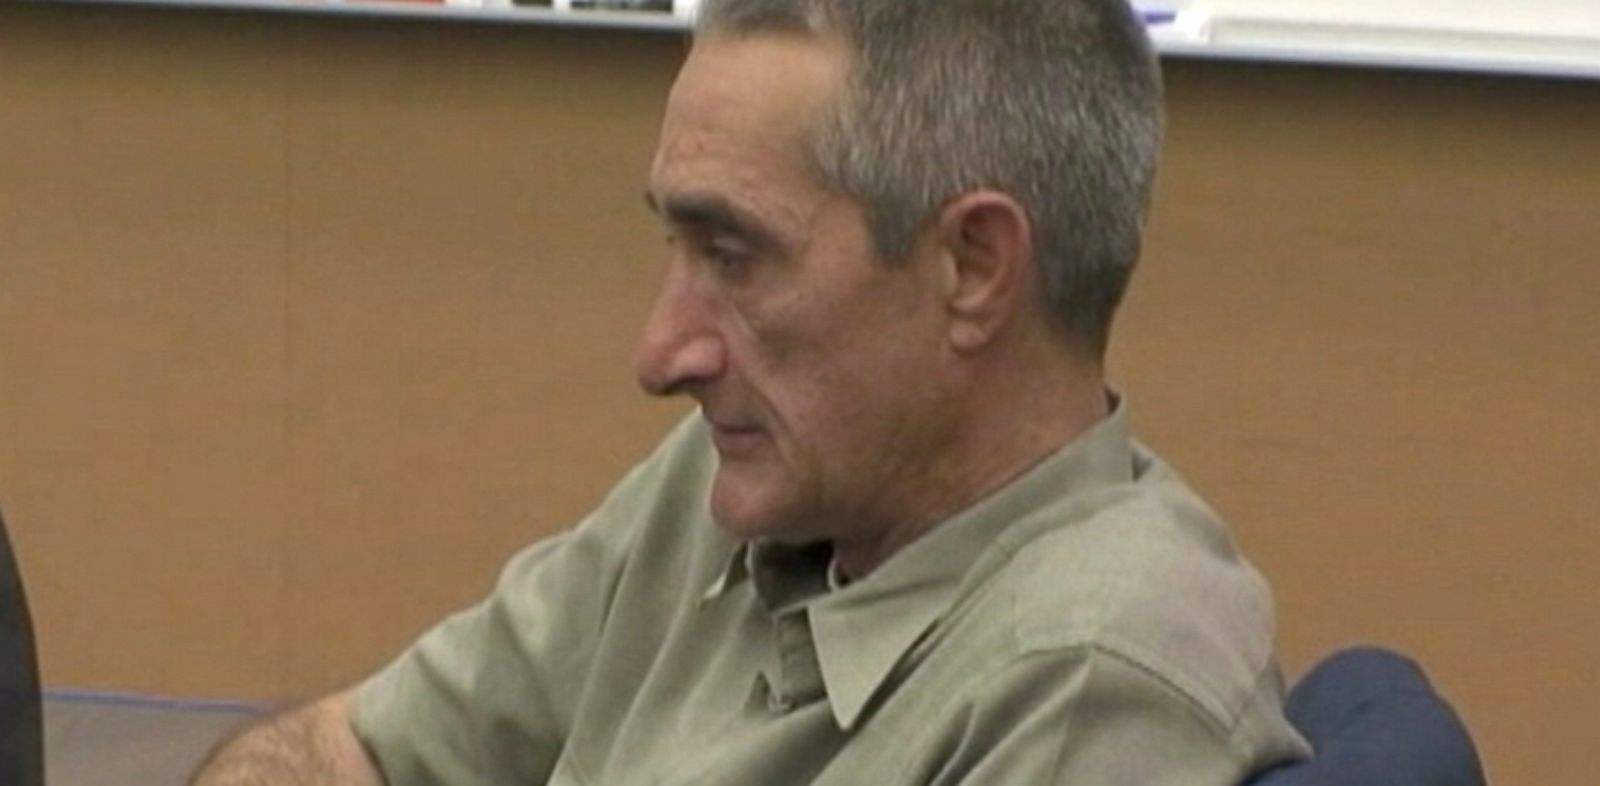 PHOTO: Keith Barton is on trial for posing as a fake doctor, Jan. 10, 2014, in San Diego.